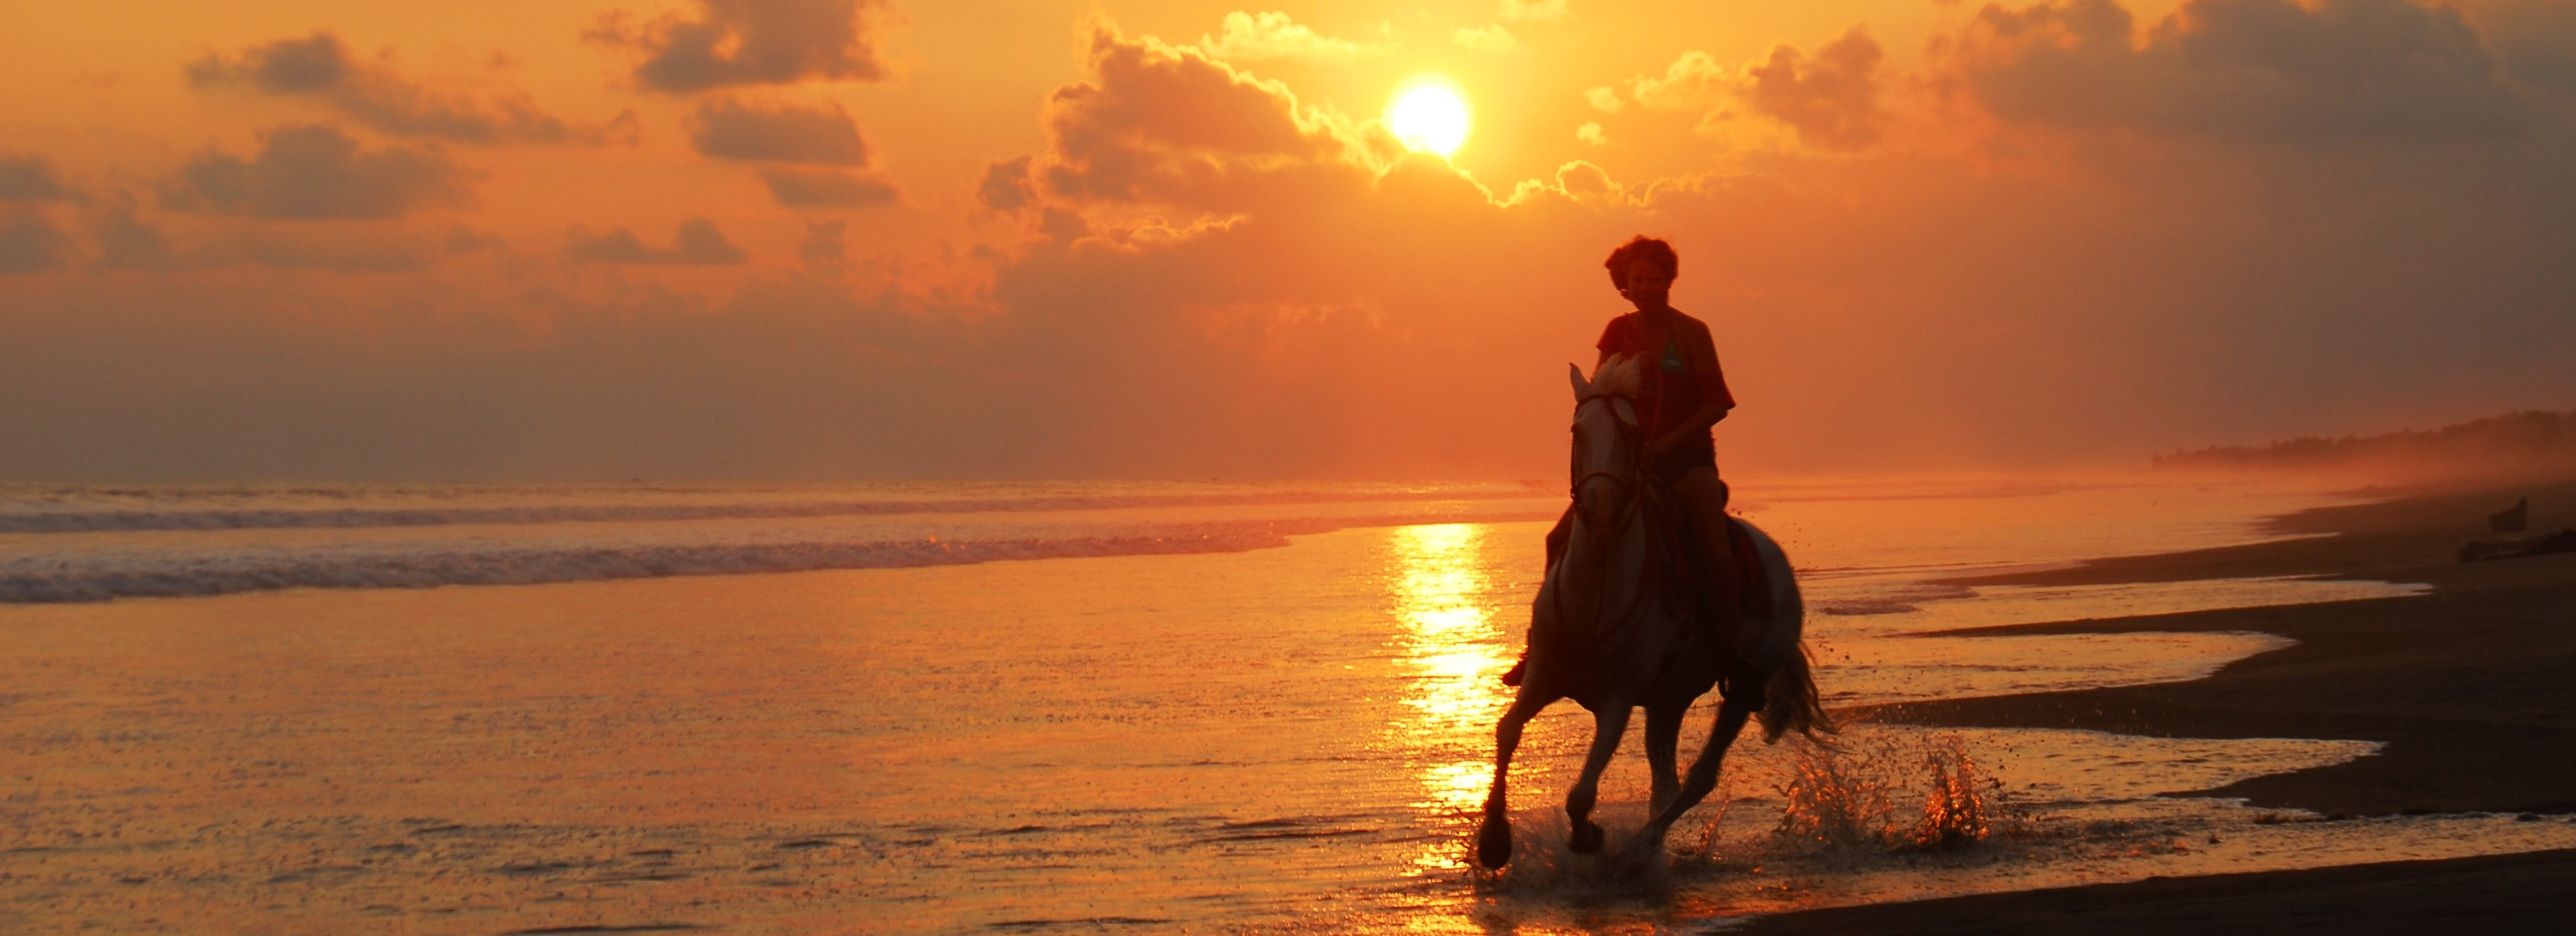 beach horseback riding - the riding adventure